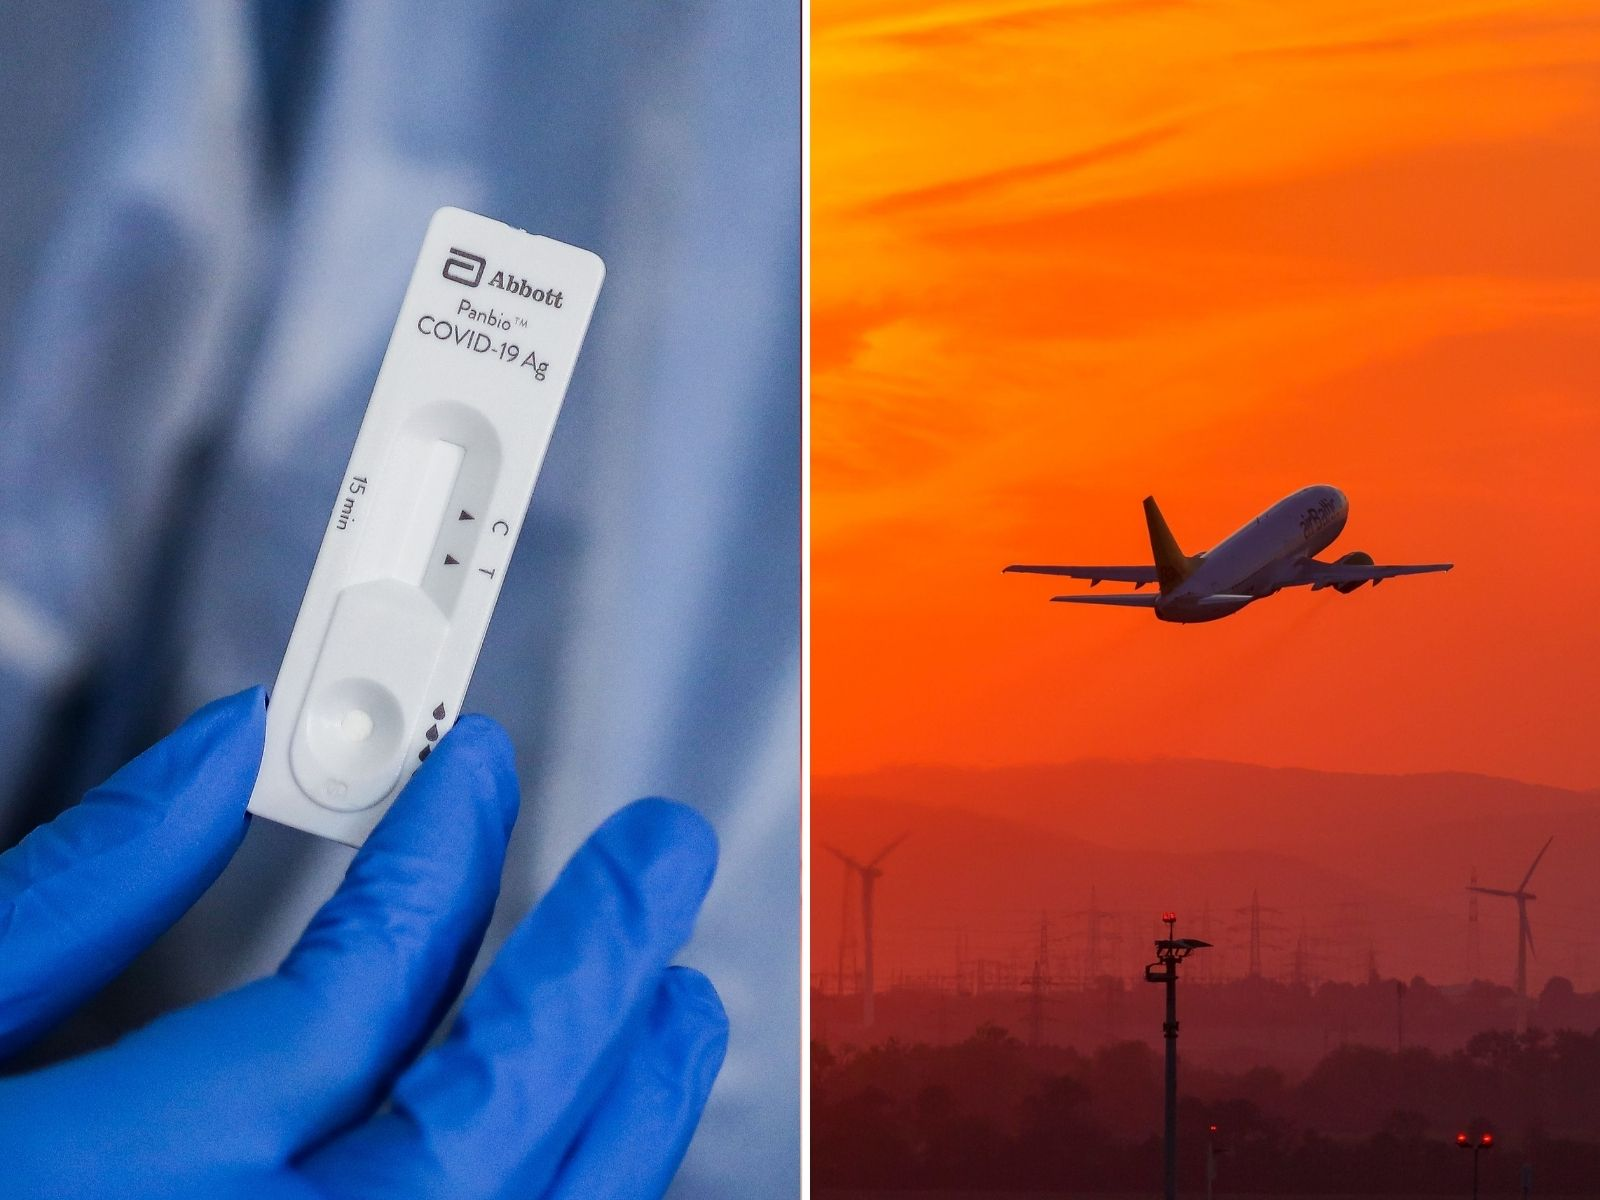 Composite image shows a rapid-result Covid-19 antigen test in Bordeaux, France and a Boeing 737 airplane at Vienna Airport in Austria.